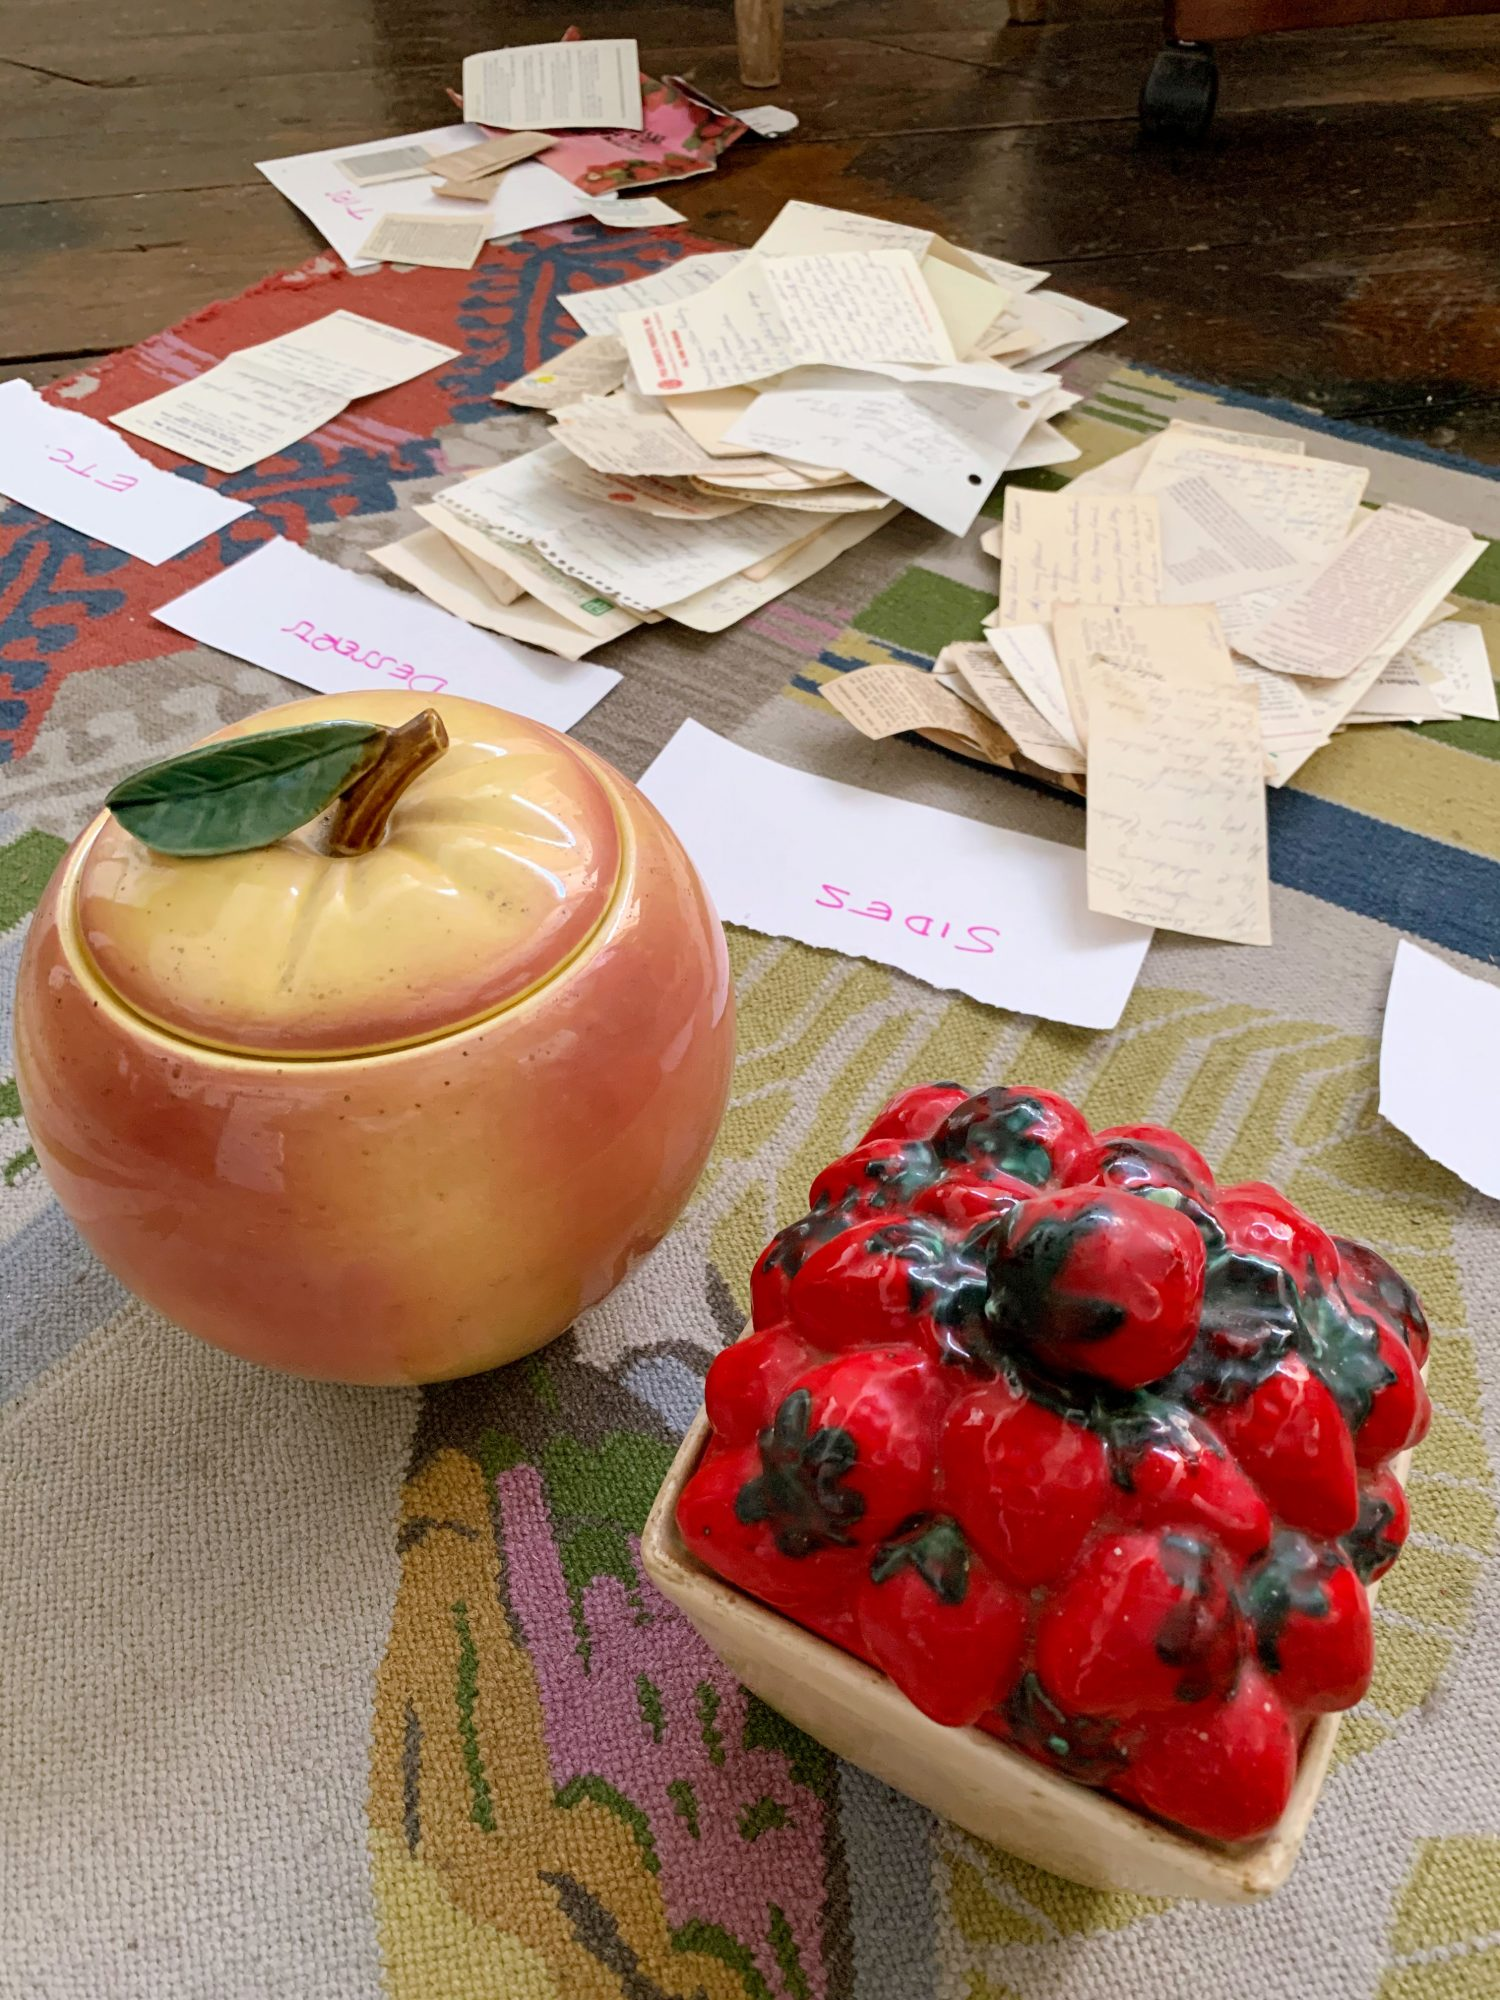 These large, fruit-shaped ceramic canisters were stuffed full of Mammaw's handwritten recipes.